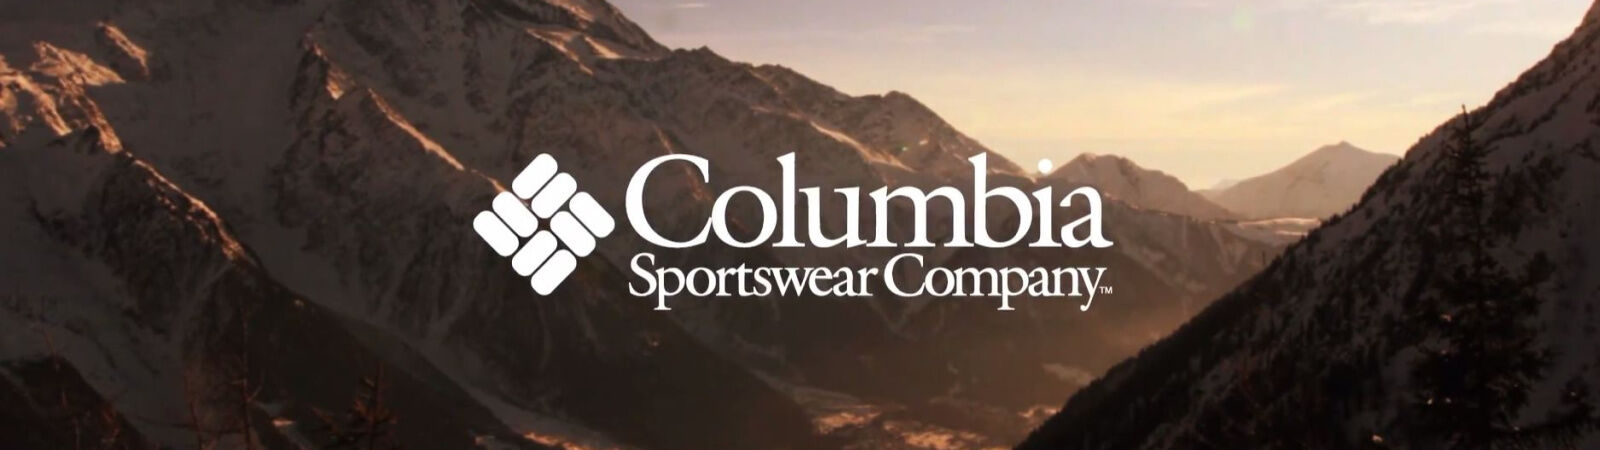 Columbia Sportswear & College Watches Available at Sportique.com